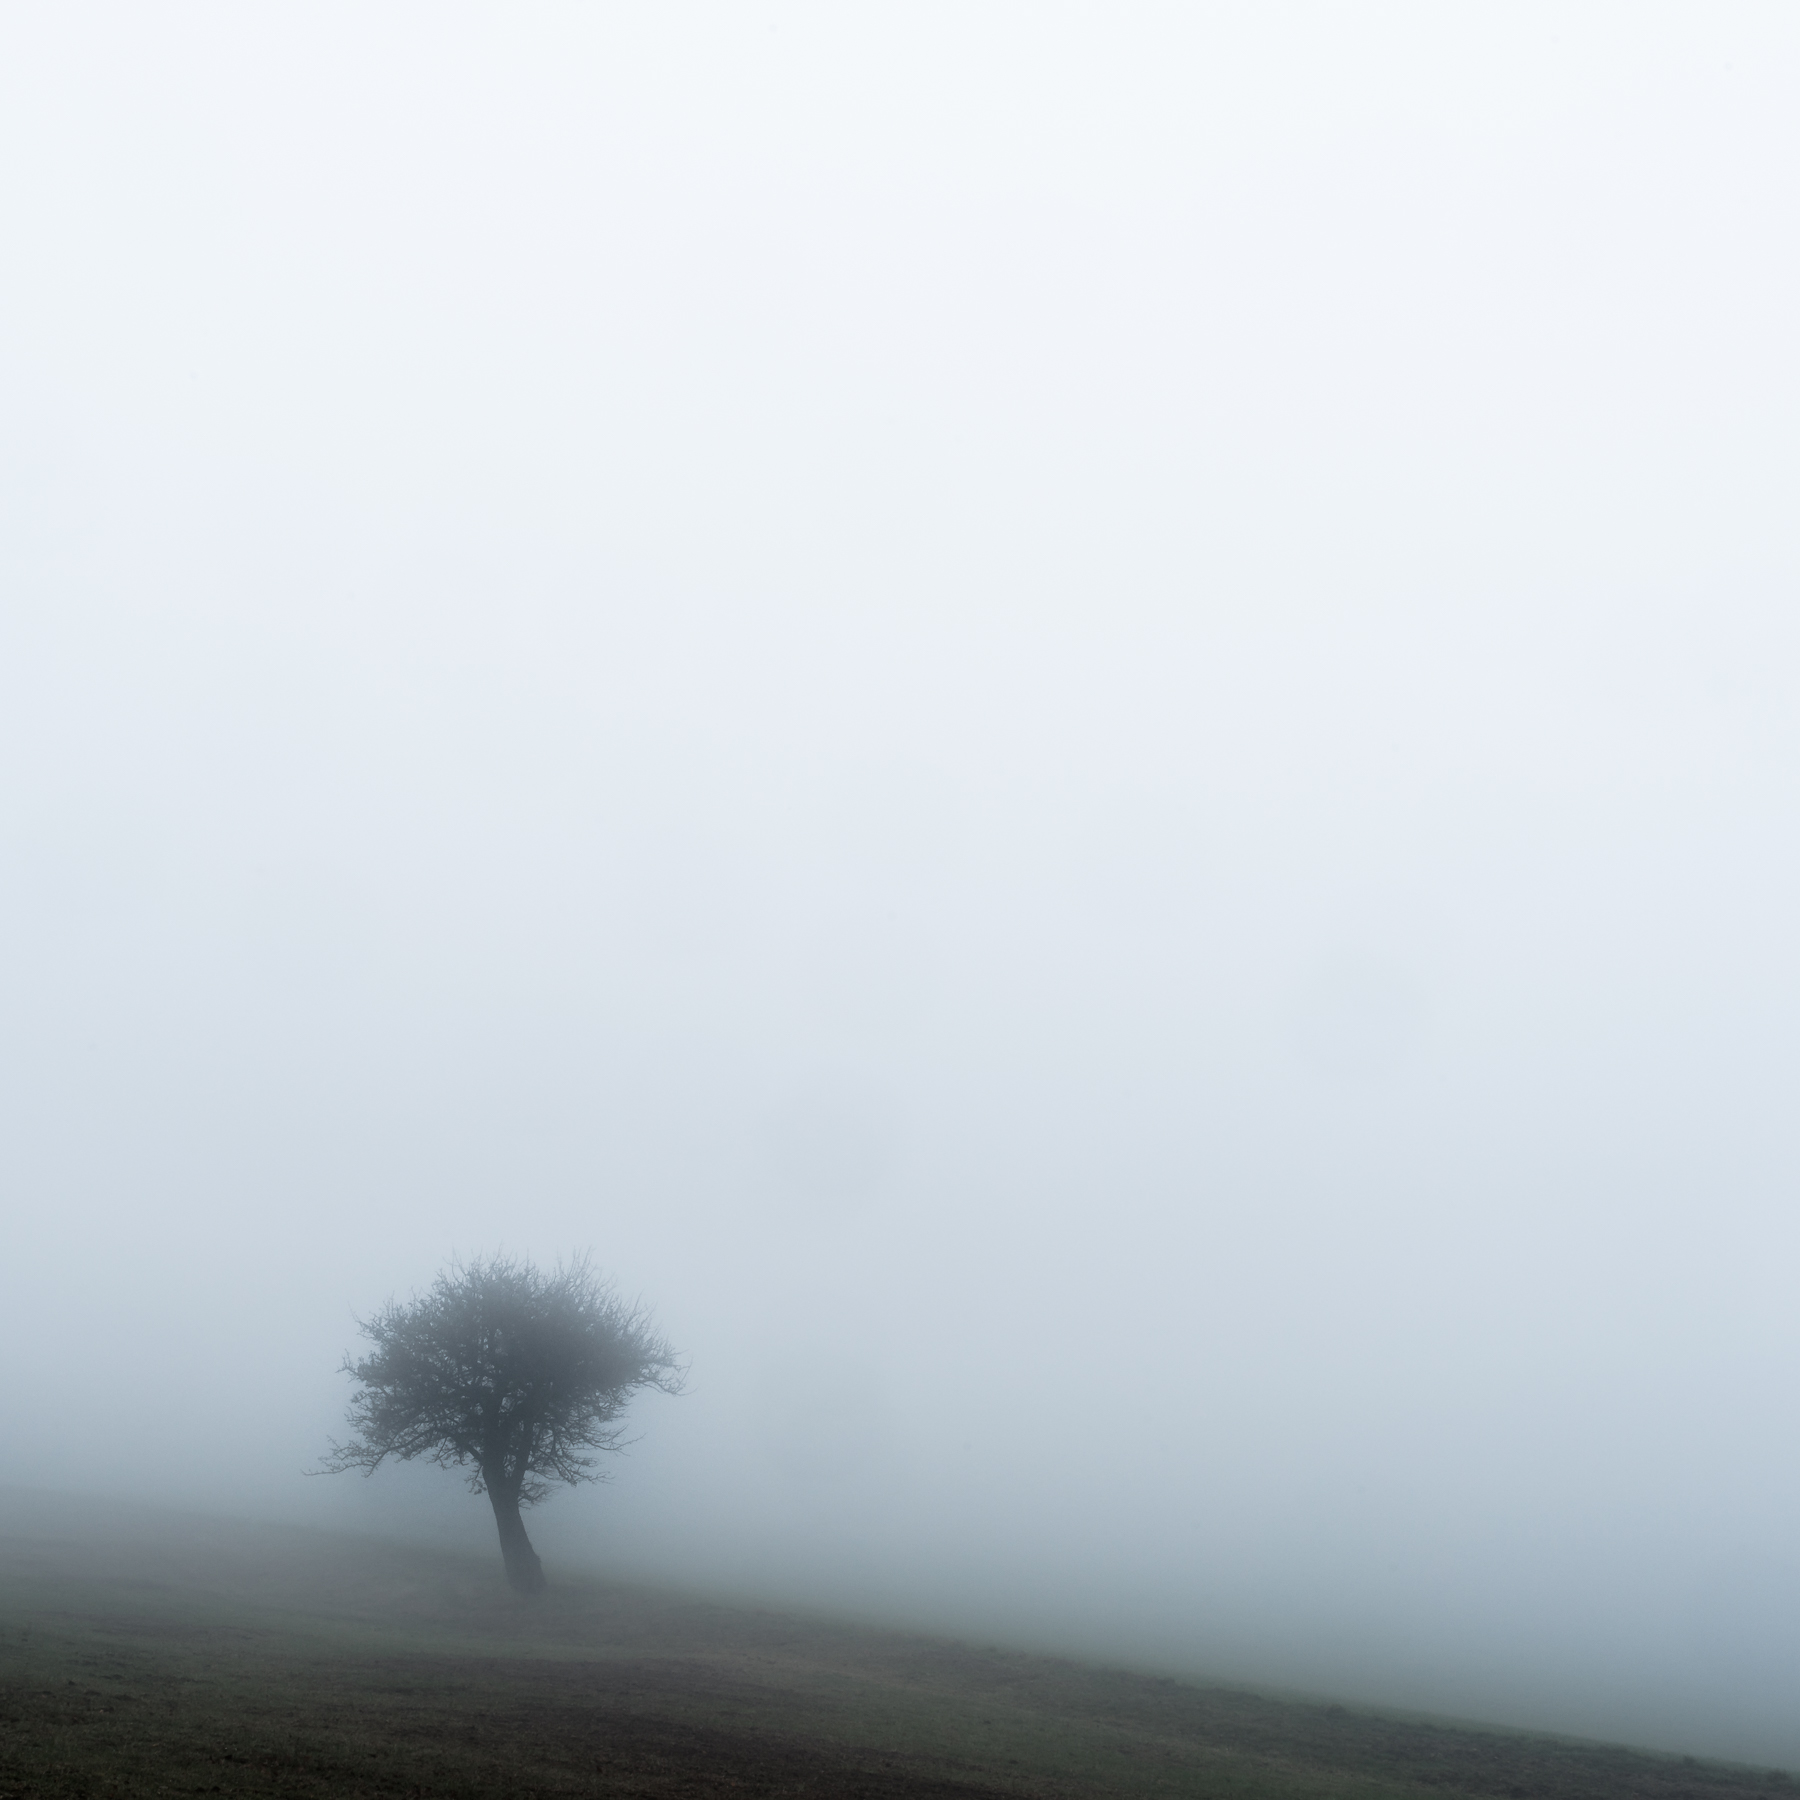 Harald_Weimann_Out of the Fog_Lost_1.jpg